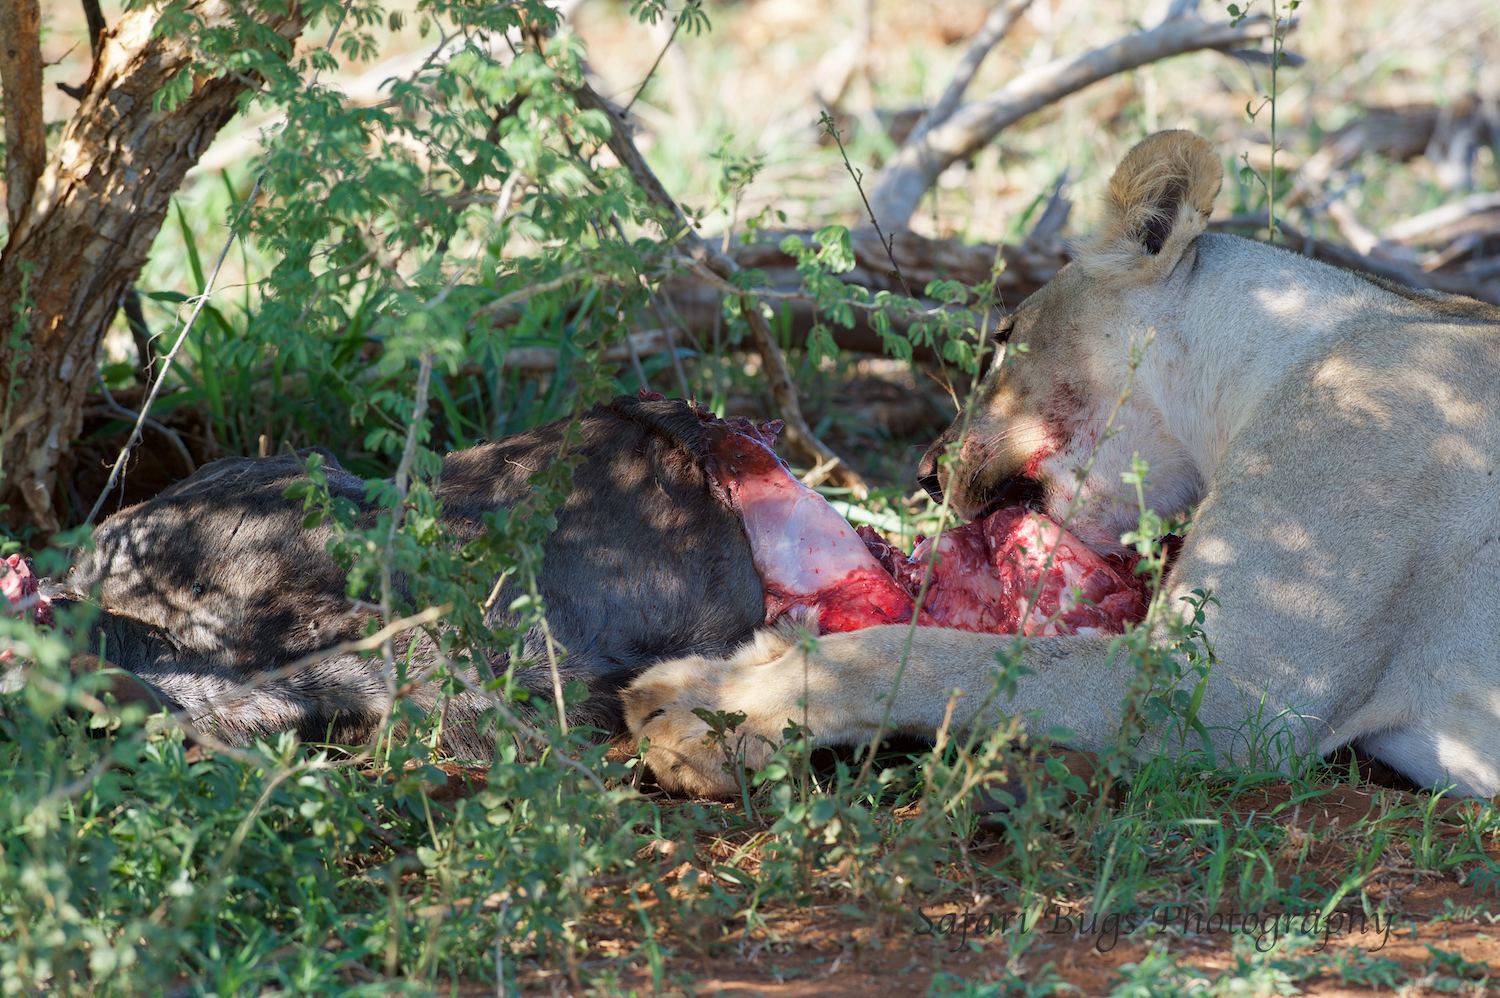 It started with one lioness eating and one sitting in the shade.